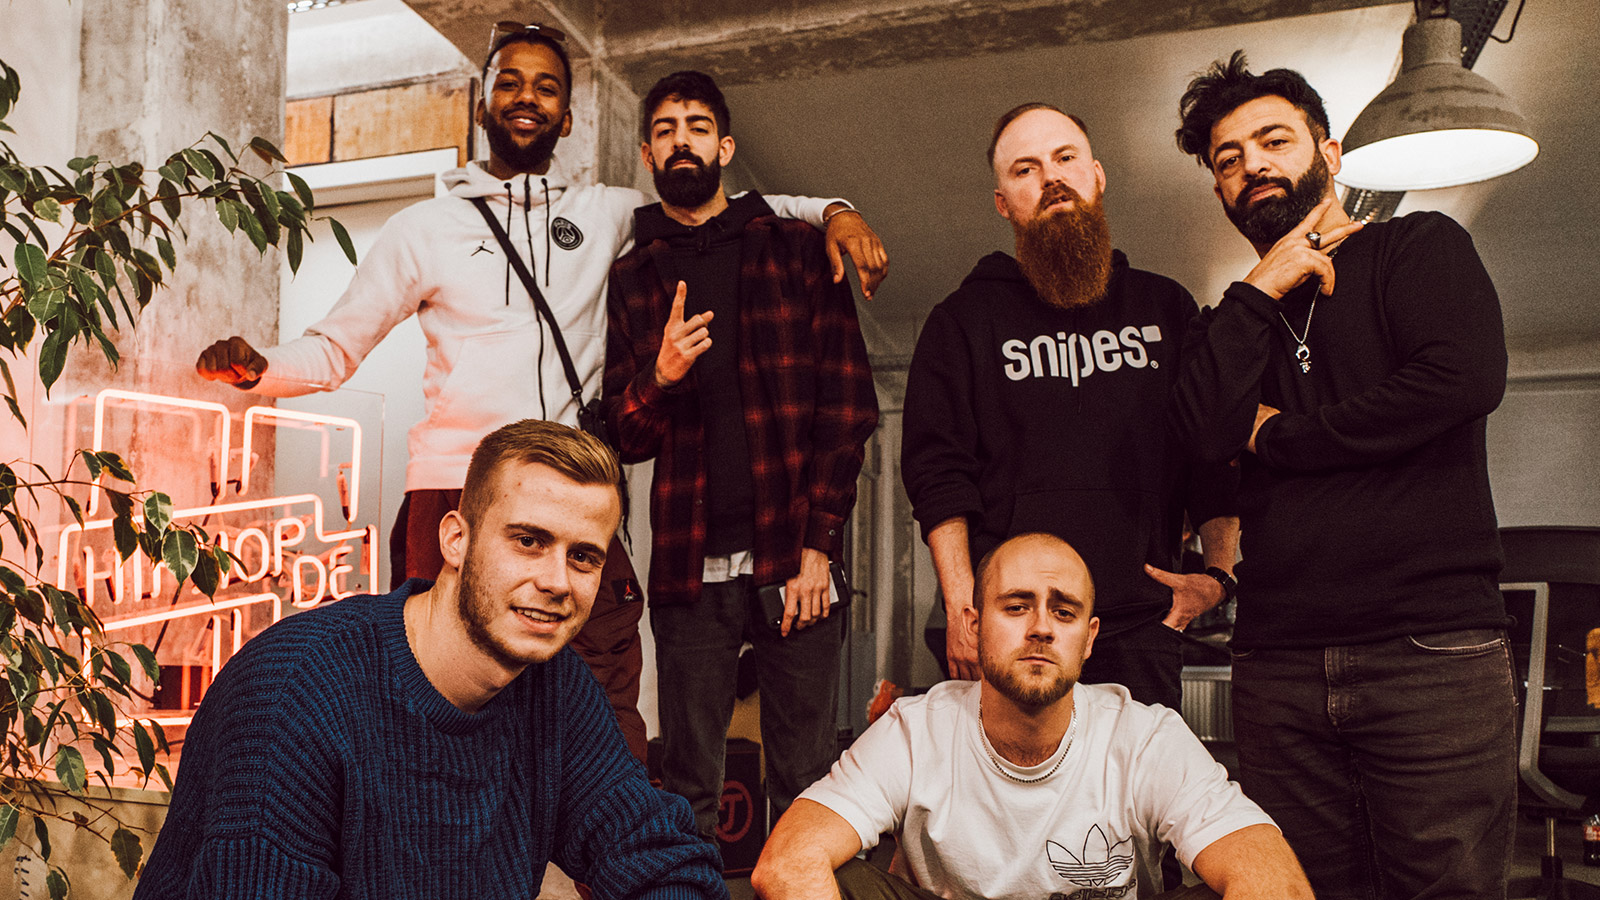 Bester Newcomer, Bester Live-Act und Bester Rap-Solo-Act International – Hiphop.de Awards 2019